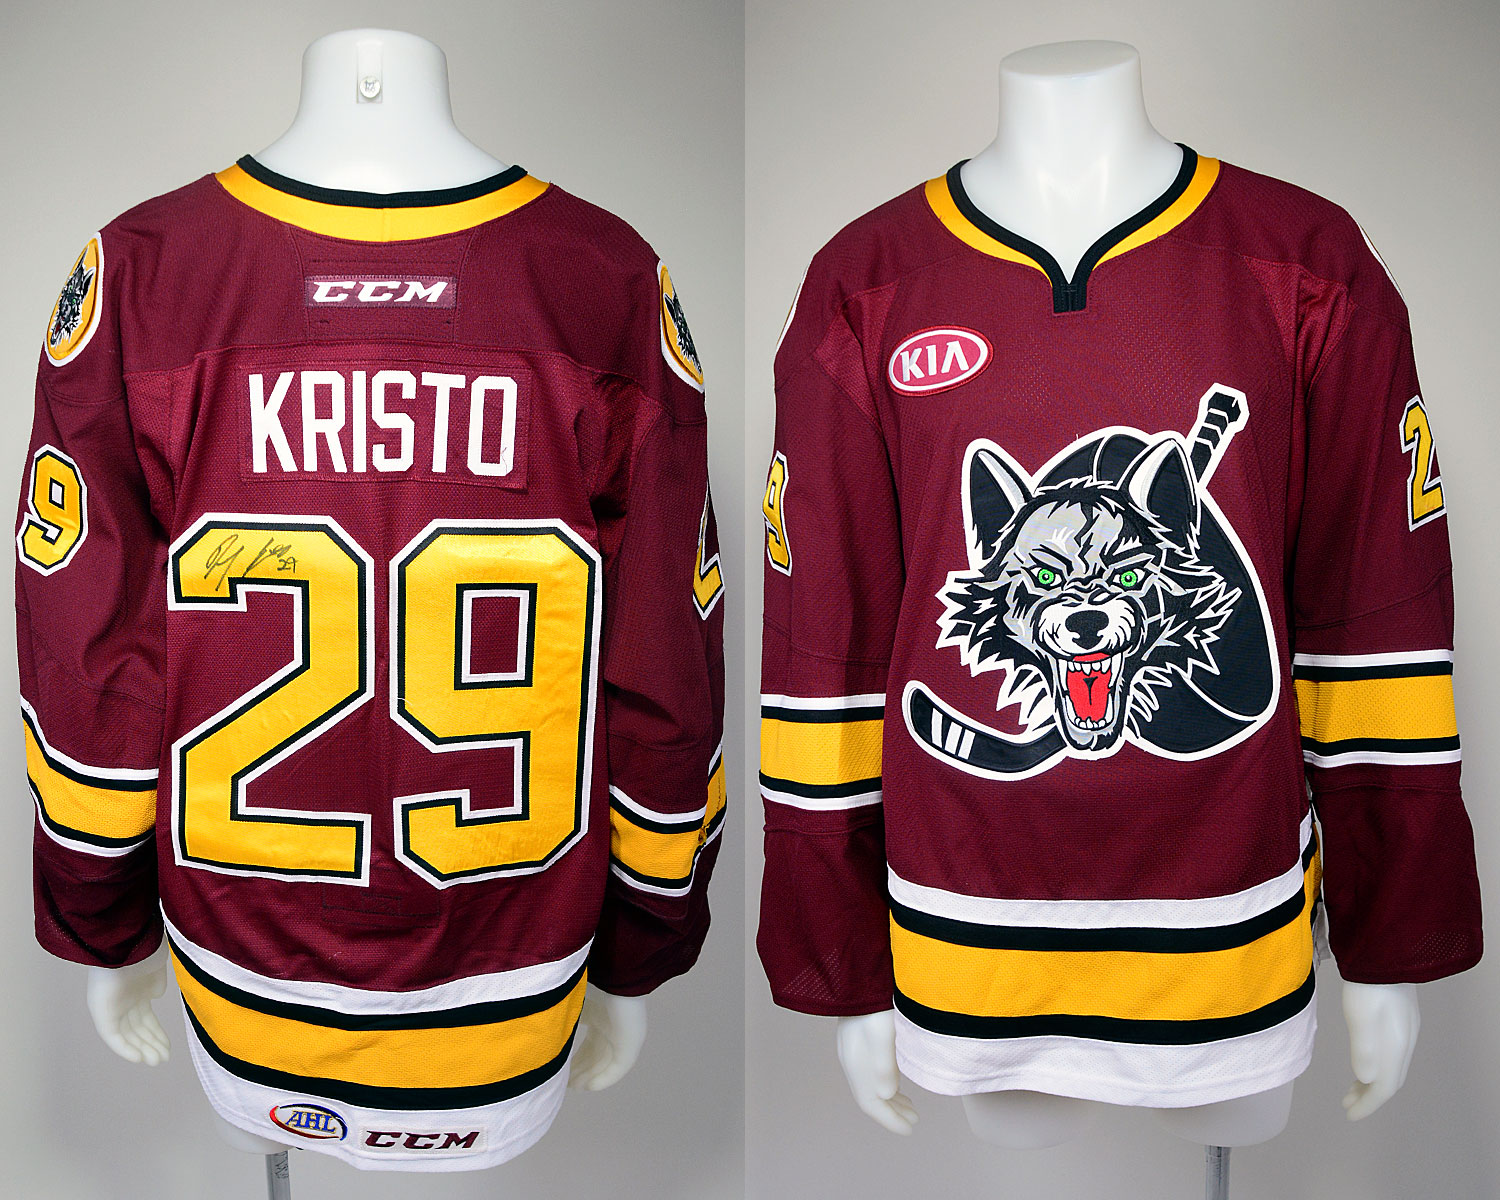 #29 Danny Kristo Game-Worn Autographed Burgundy Jersey